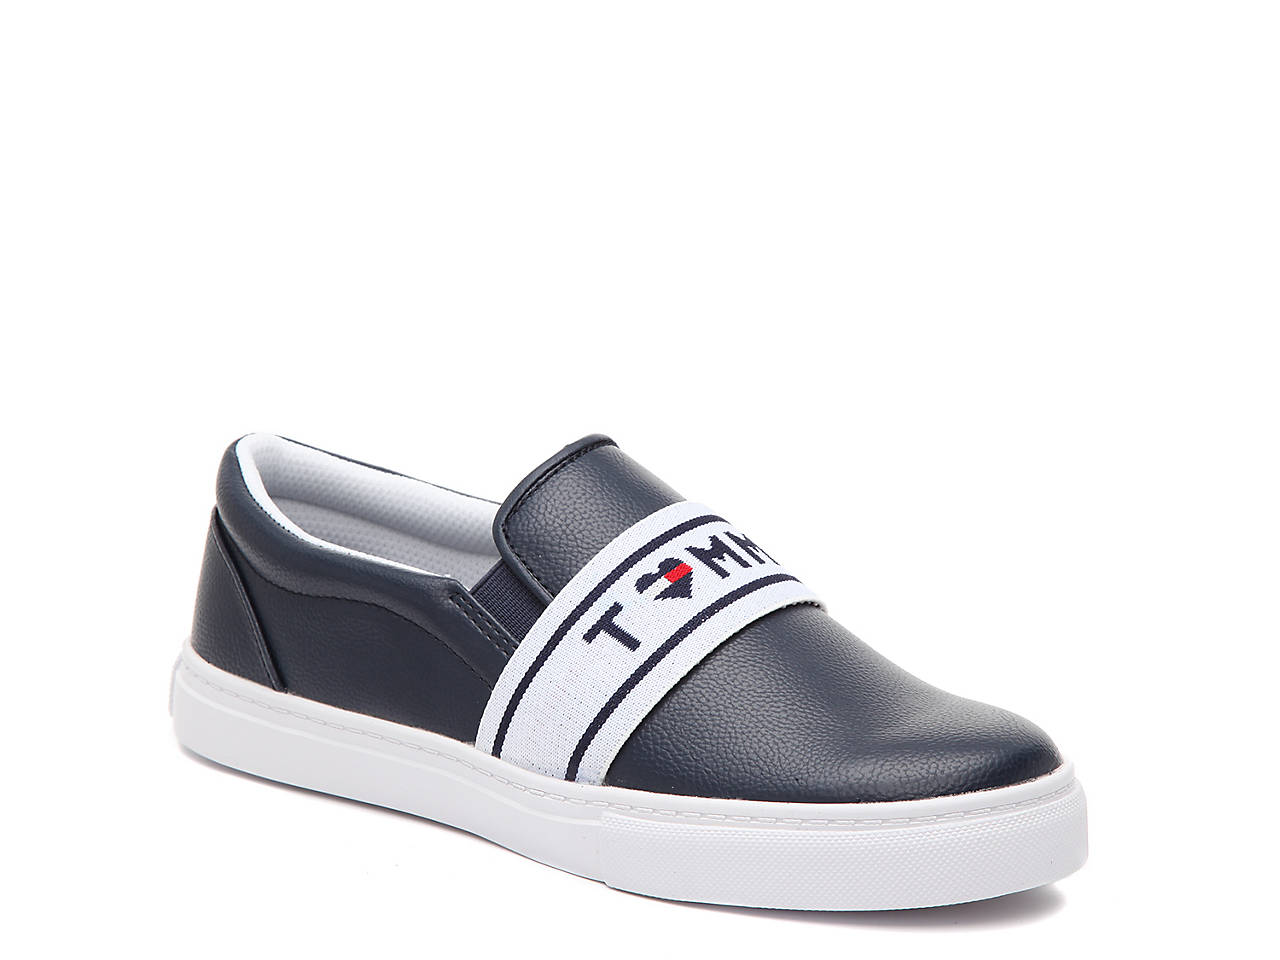 dca85d9c Tommy Hilfiger Lourena Slip-On Sneaker Women's Shoes | DSW